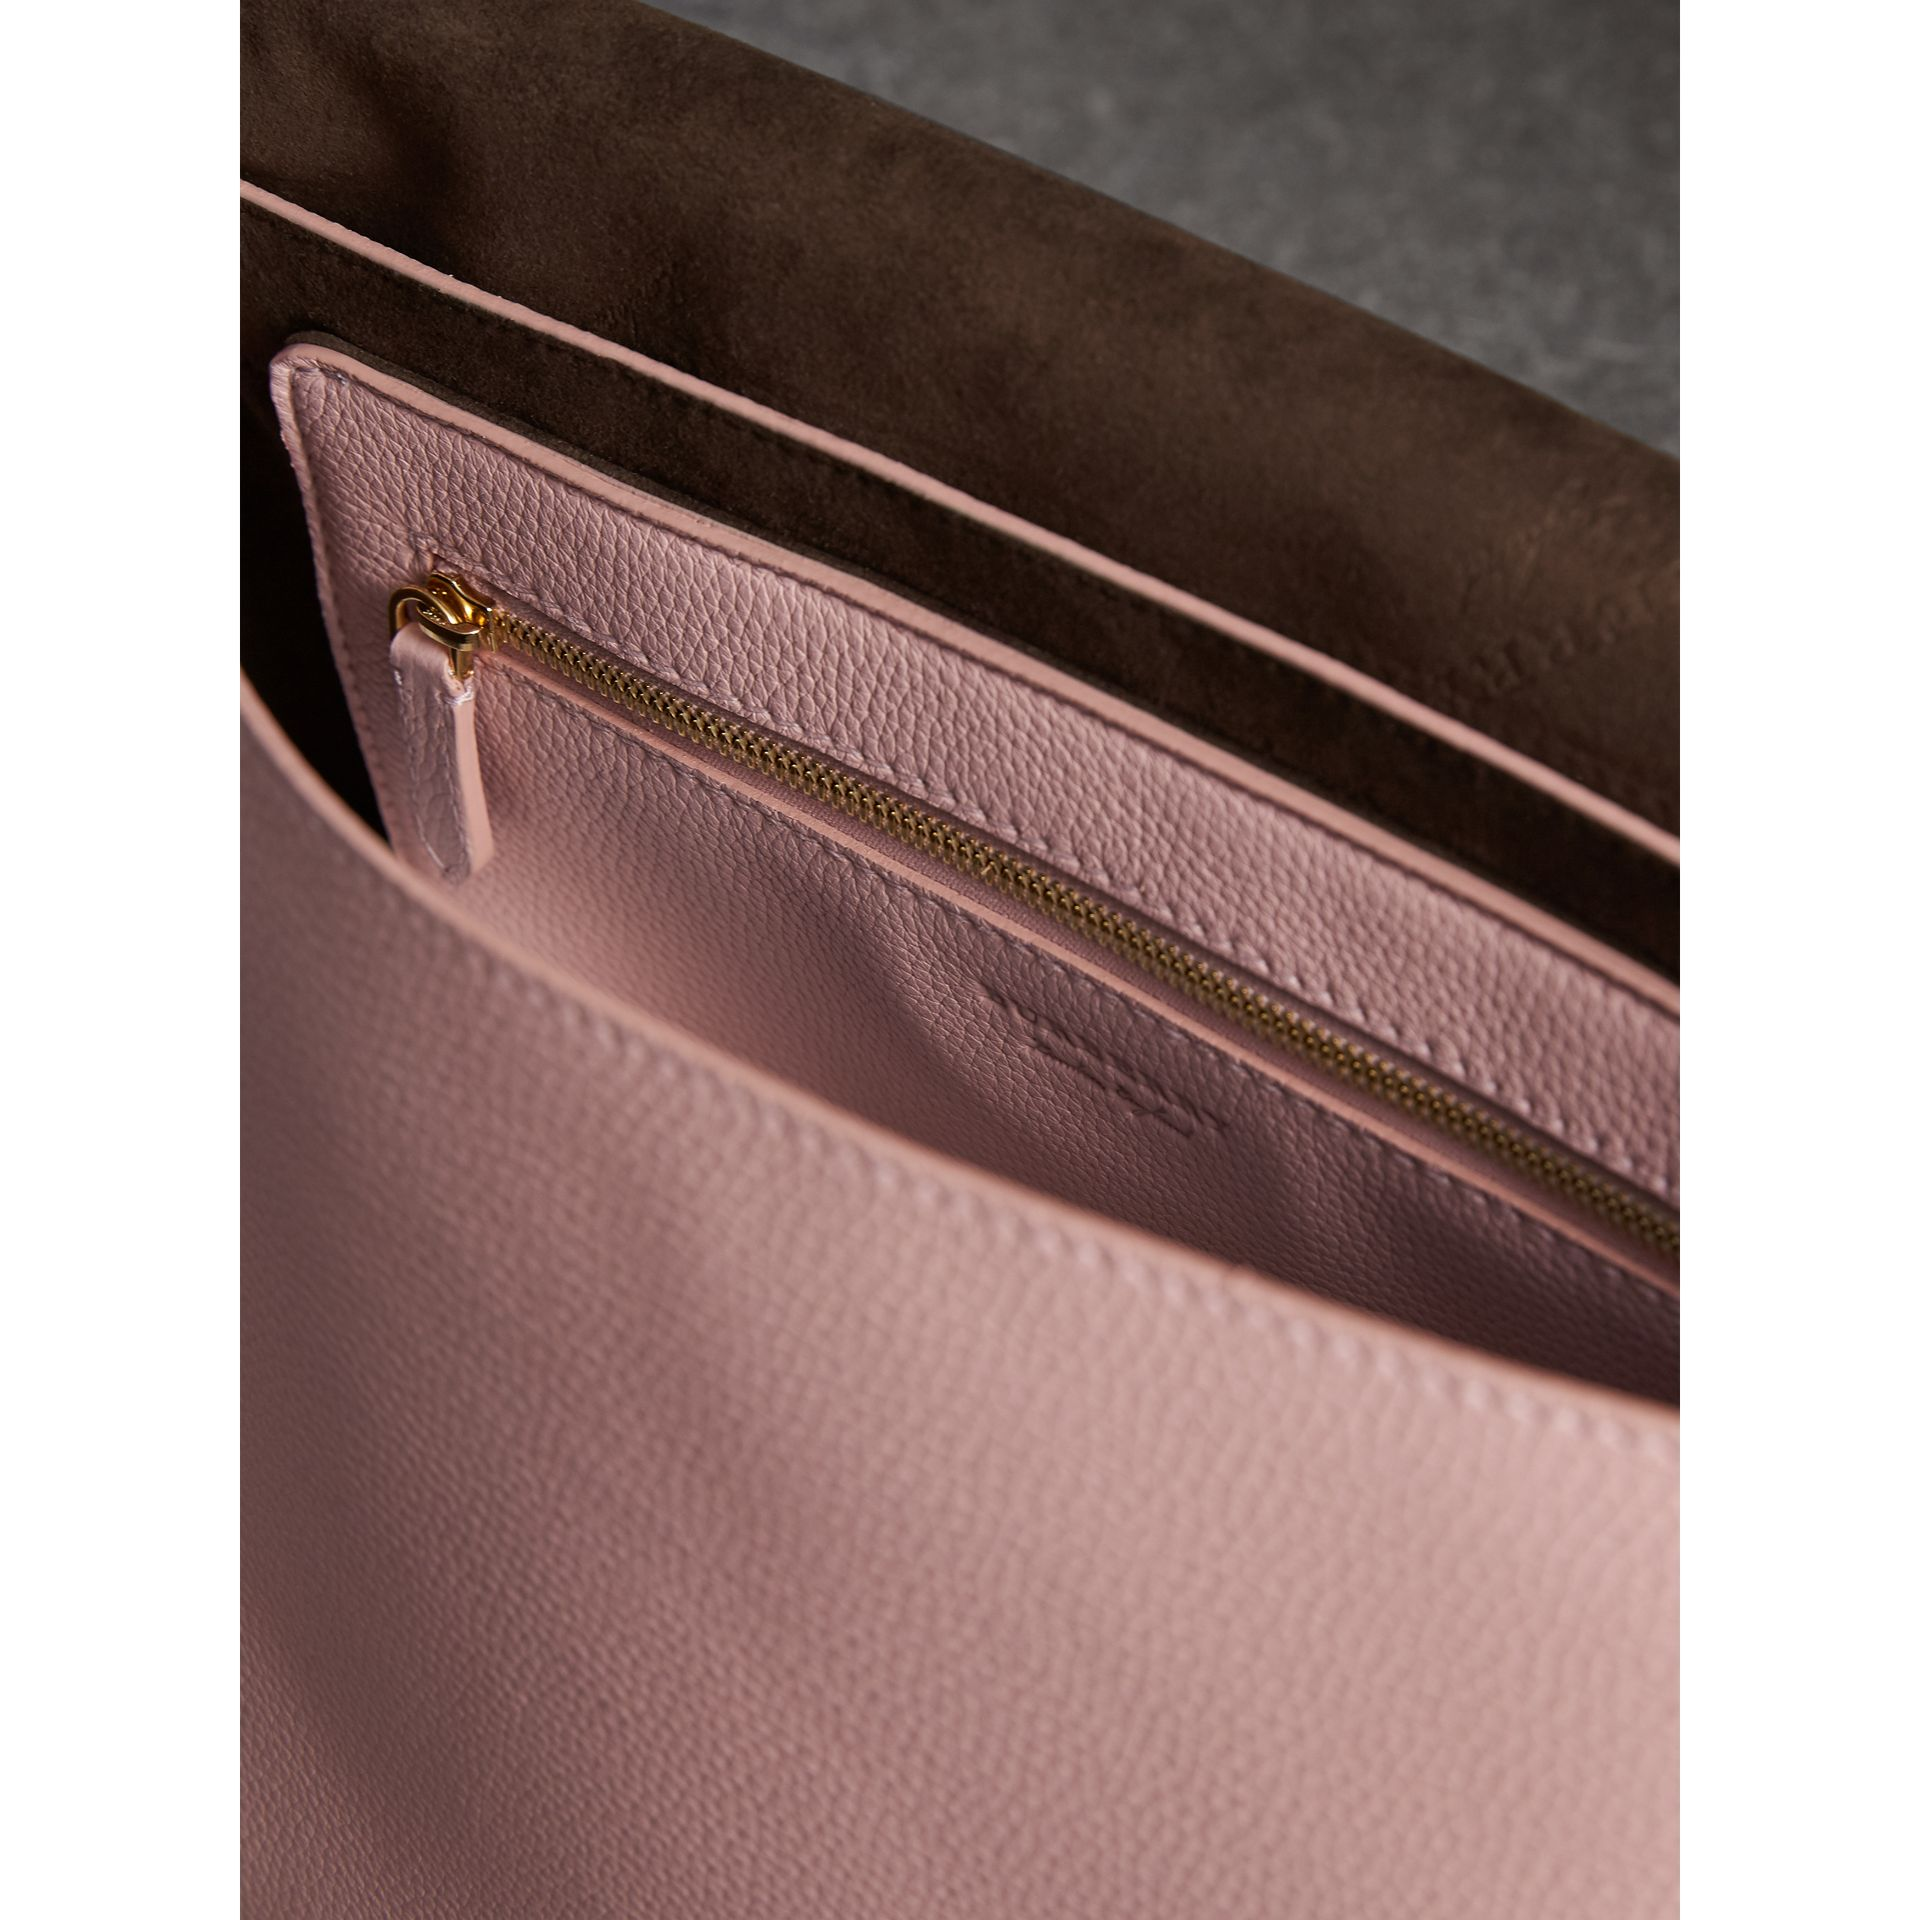 Sac Messenger moyen en cuir estampé (Rose Platiné Pâle) - Femme | Burberry - photo de la galerie 4